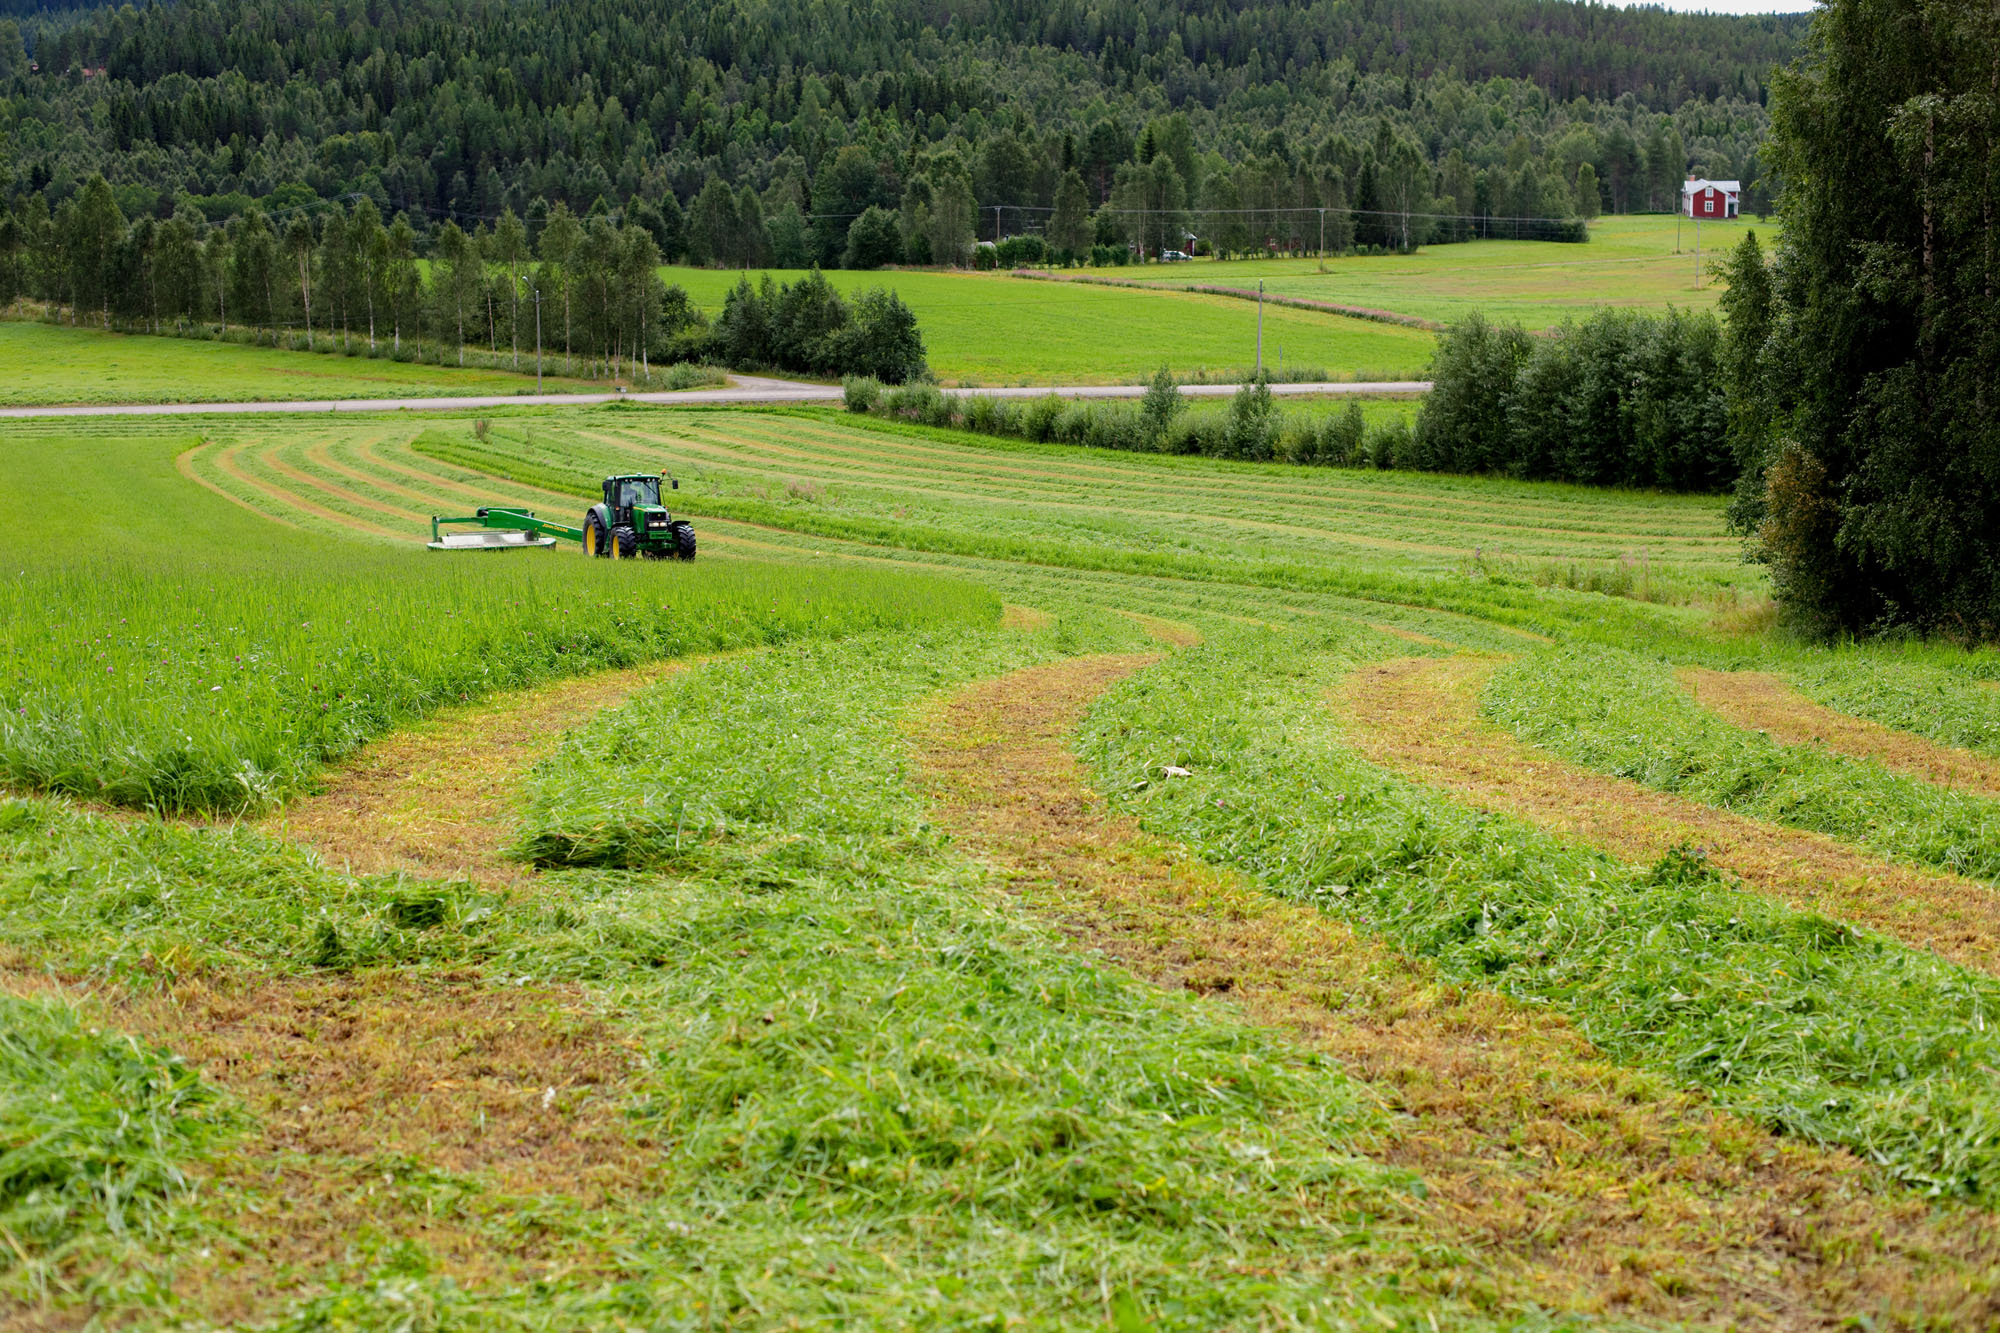 Haymaking. - Photo: Patrick Degerman, www.degerman.se